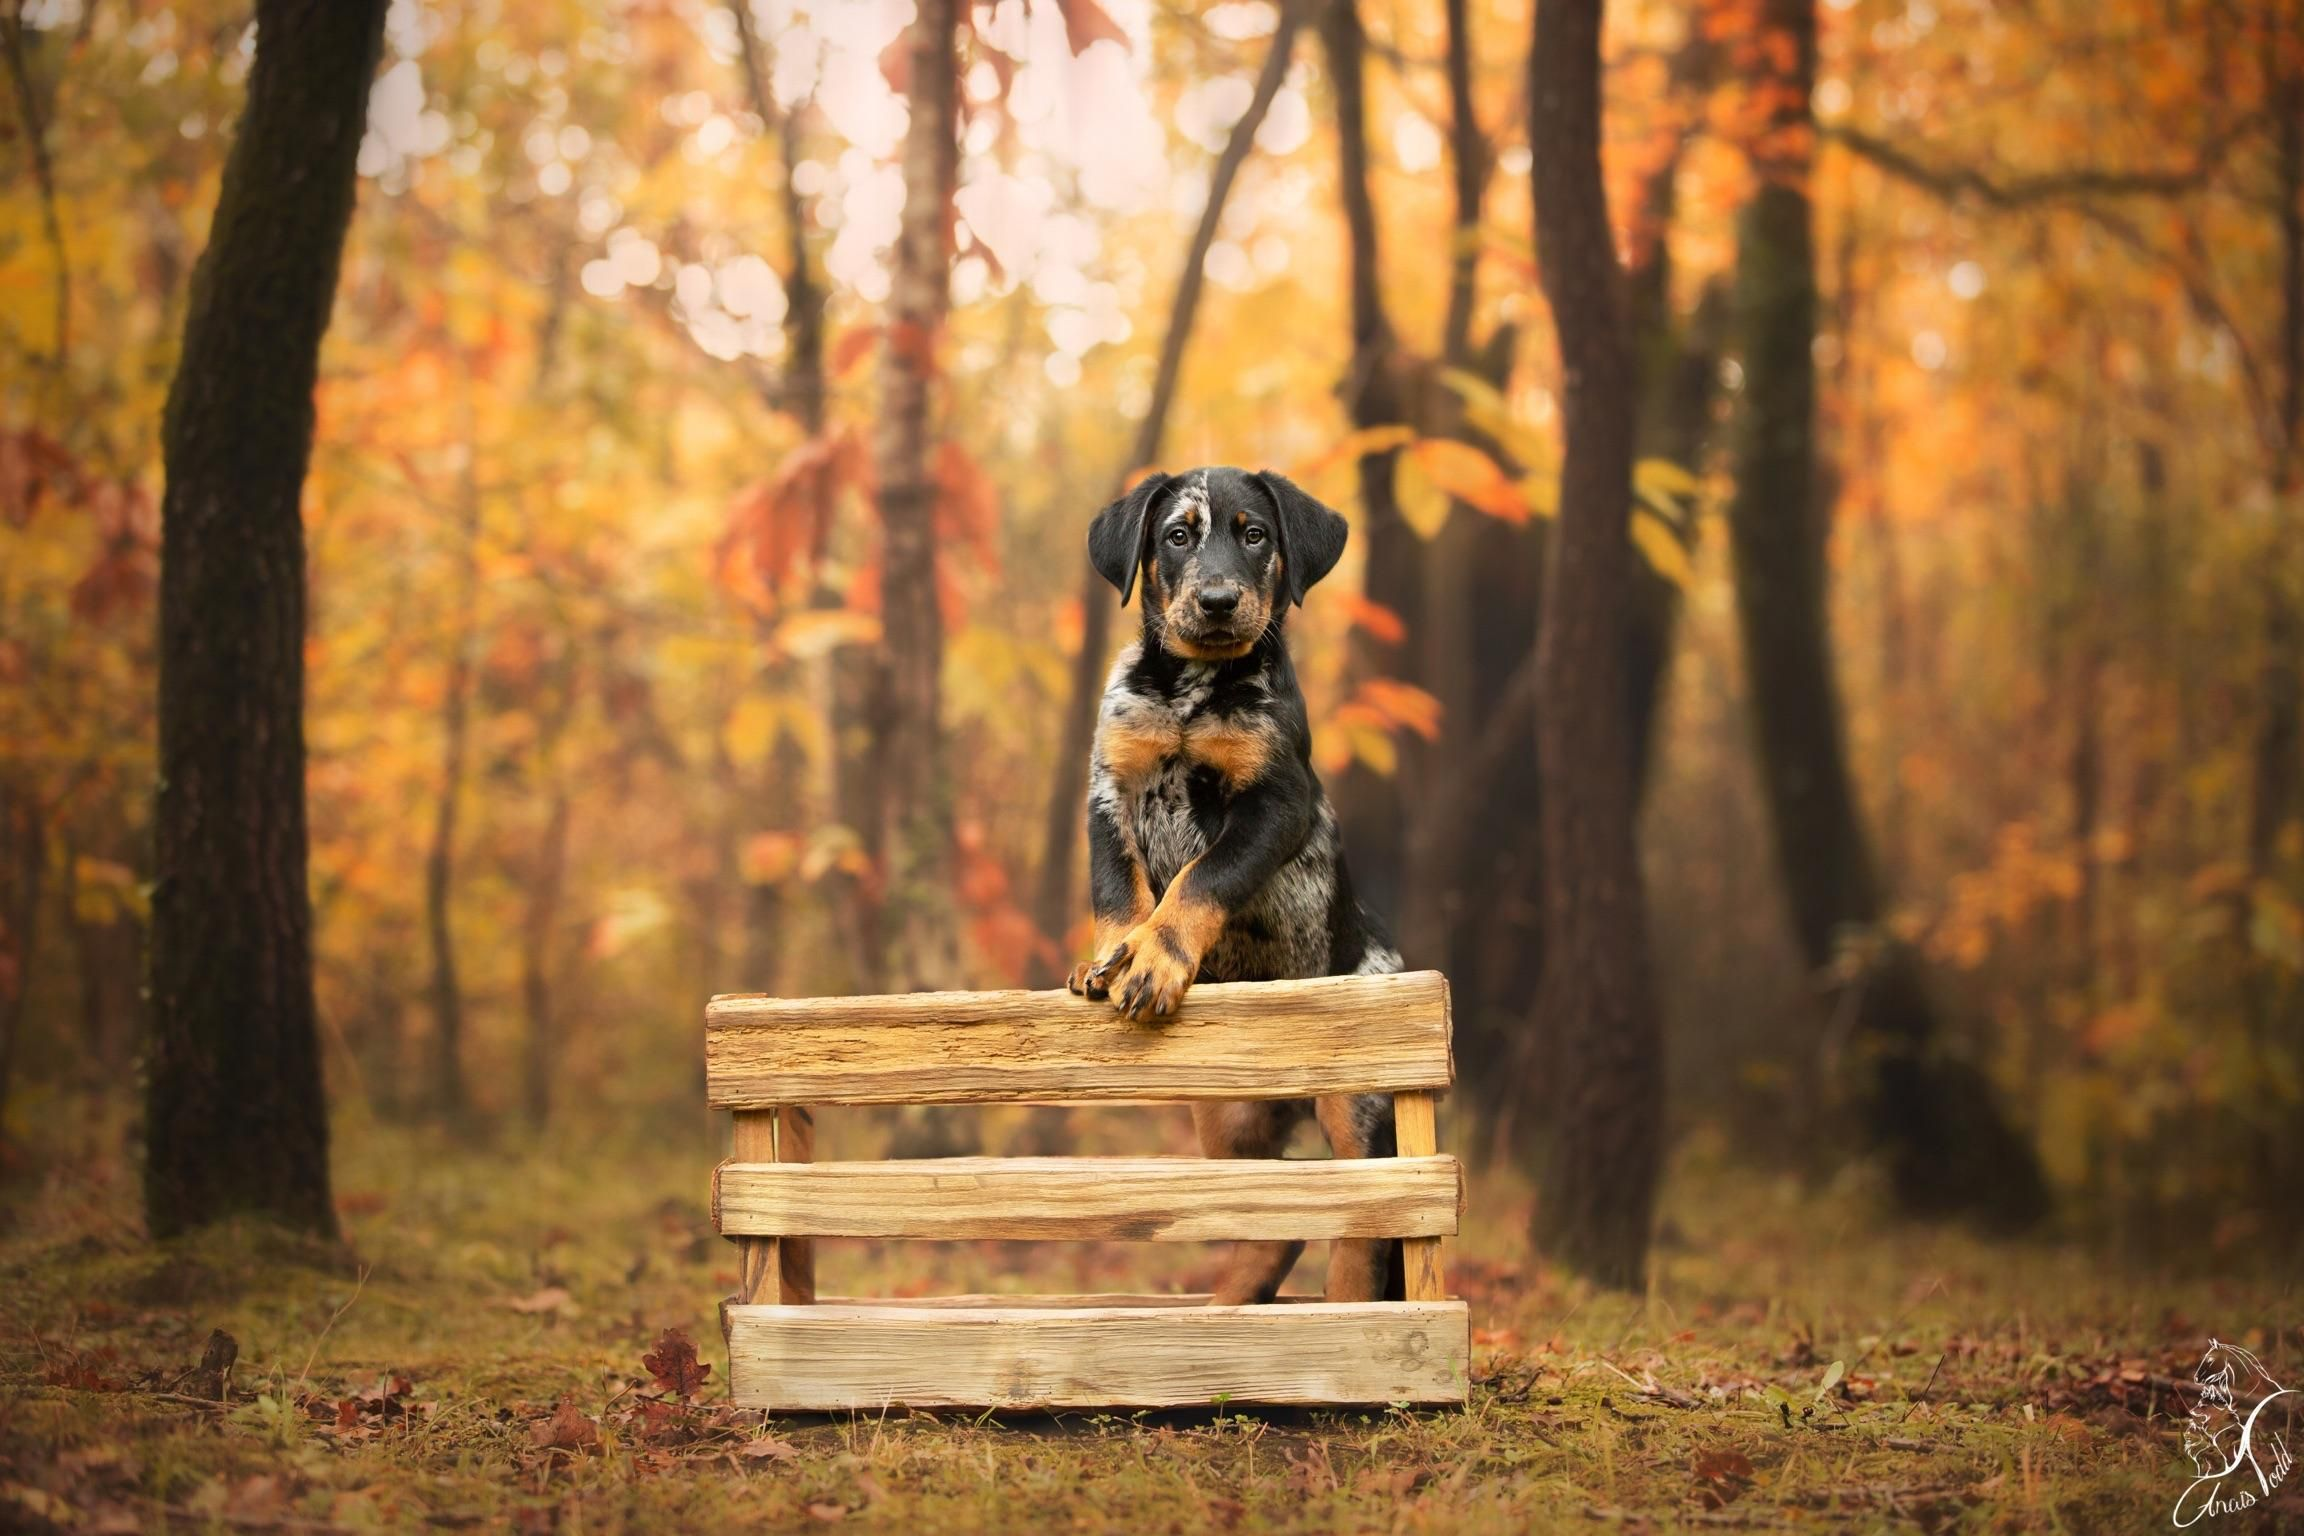 Happy new year dogpictures dogs aww cuteanimals